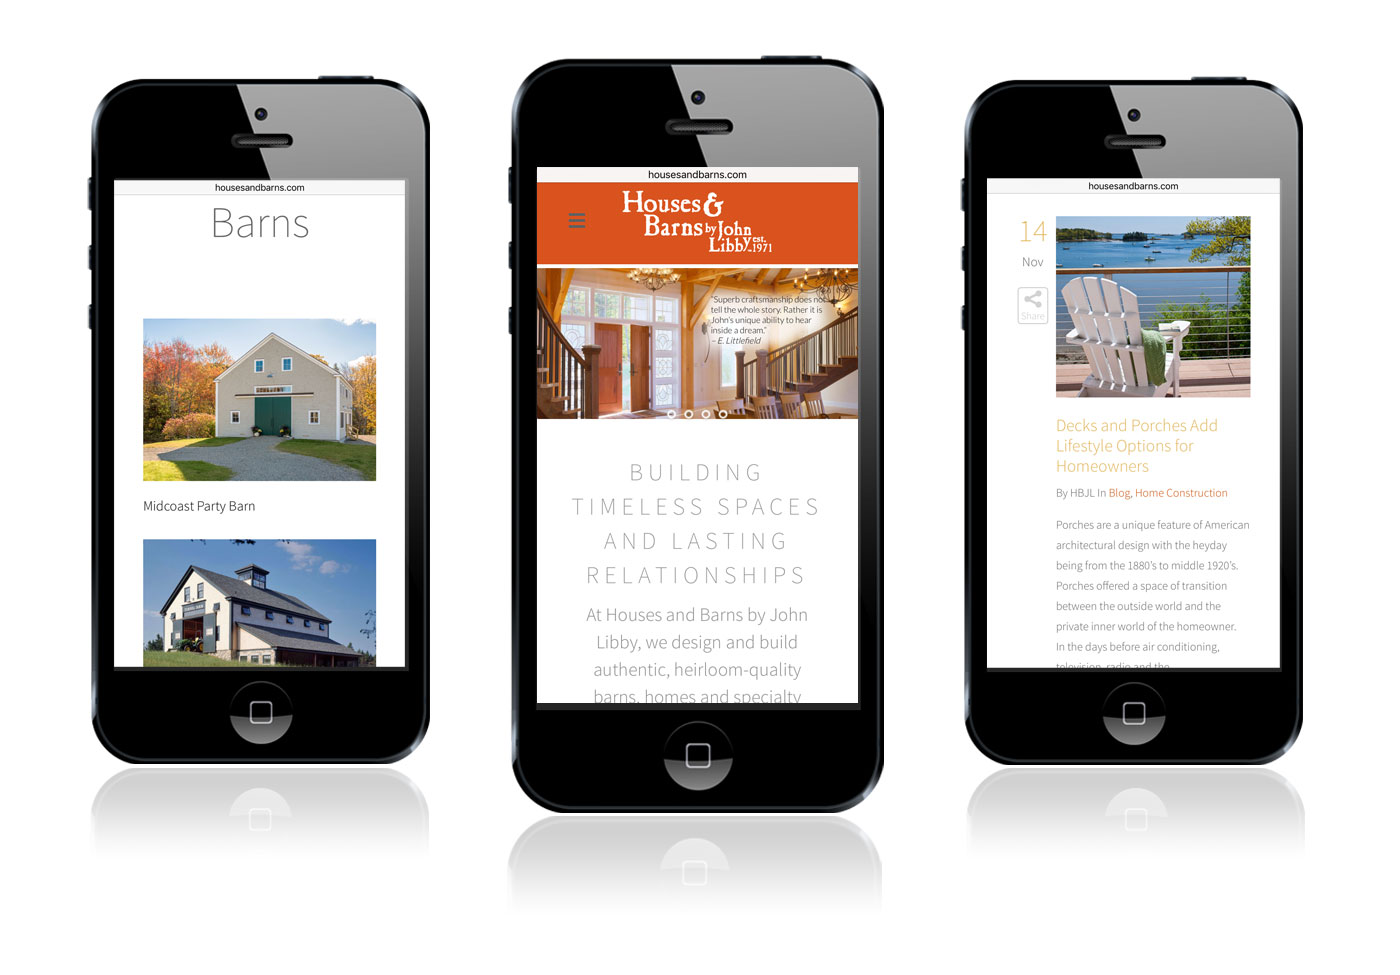 Houses & Barns mobile site